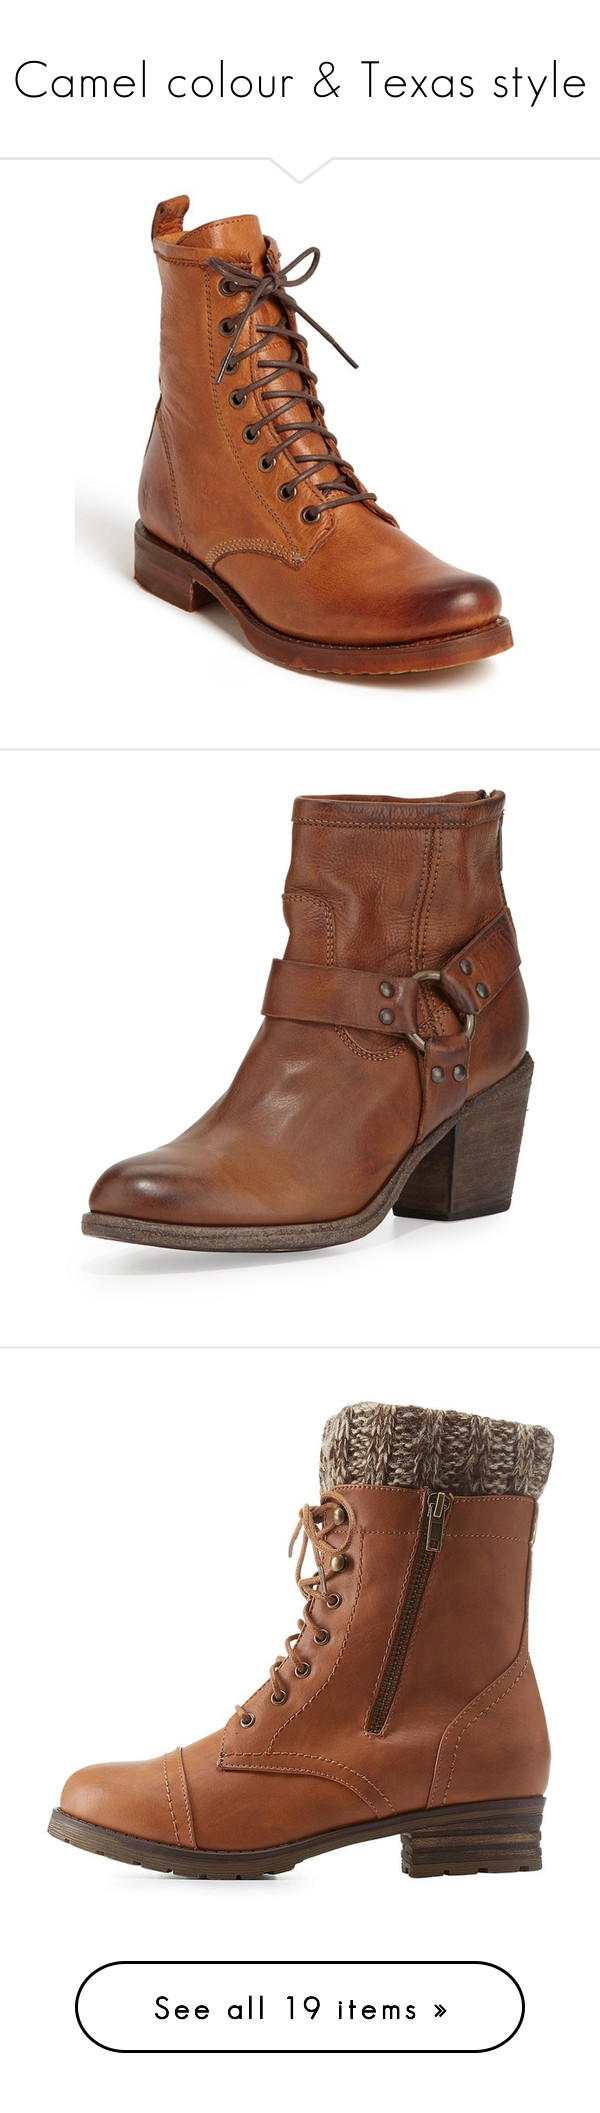 """Camel colour & Texas style"" by lorika-borika on Polyvore featuring shoes, boots, ankle booties, ankle boots, dark brown leather, short leather boots, low heel booties, slouch ankle boots, leather booties и military boots"